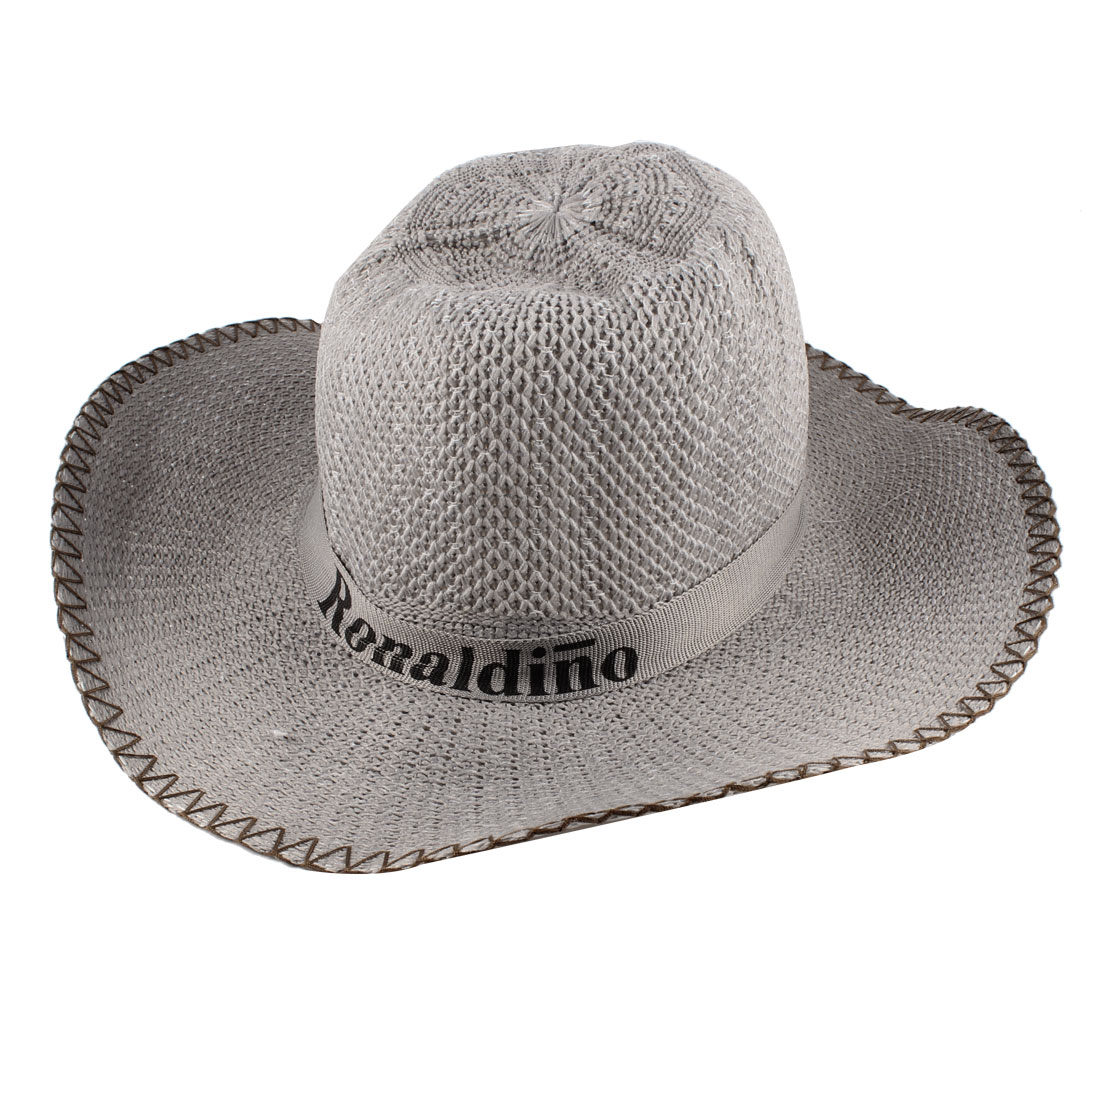 Man Letters Pattern Band Cowboy Hat Cap Gray w Adjustable Strap